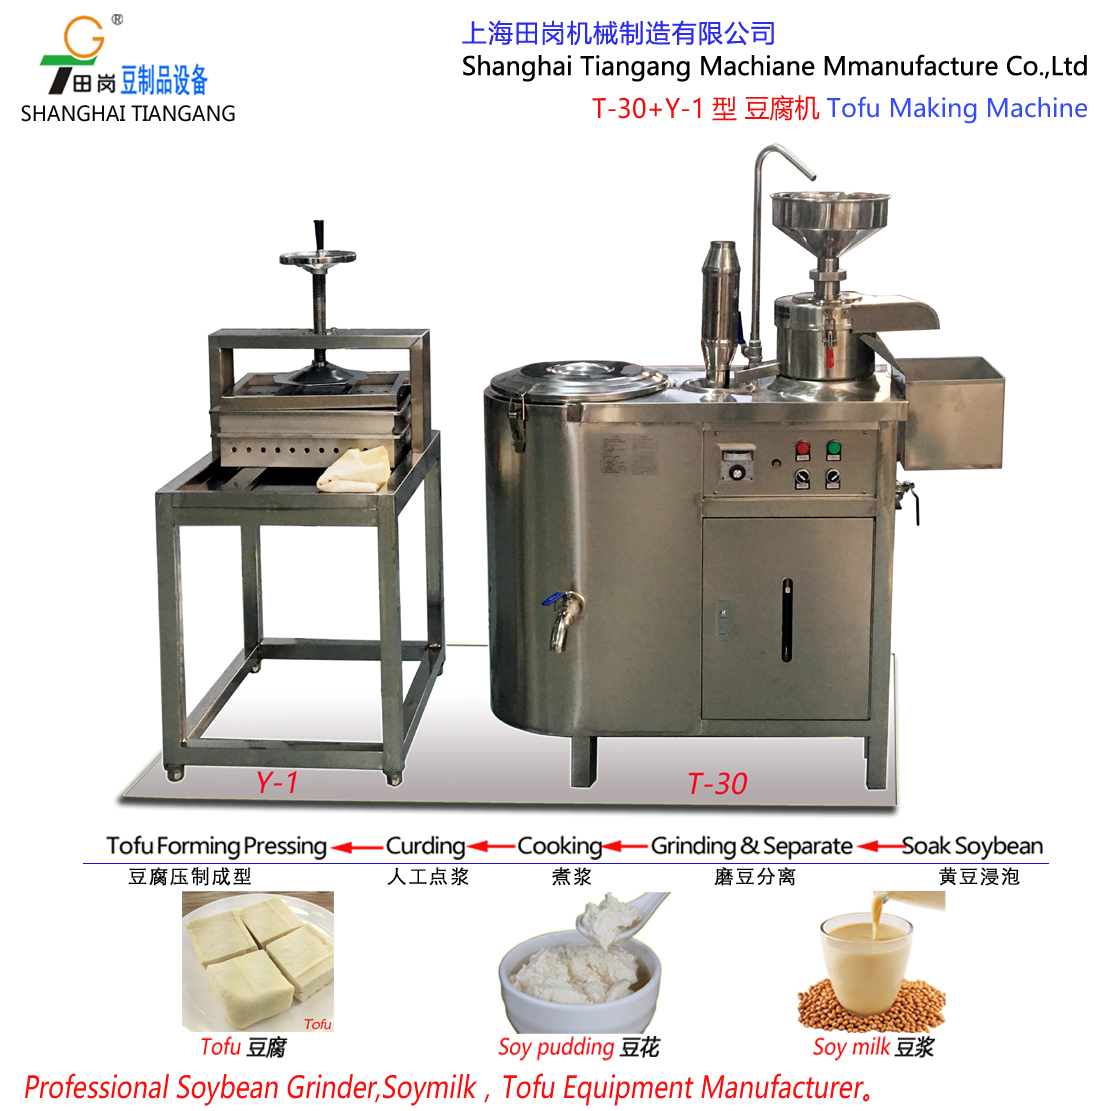 TGM-100 Soyabean grinding machine / Soya milk machine/Minitype tofu machine